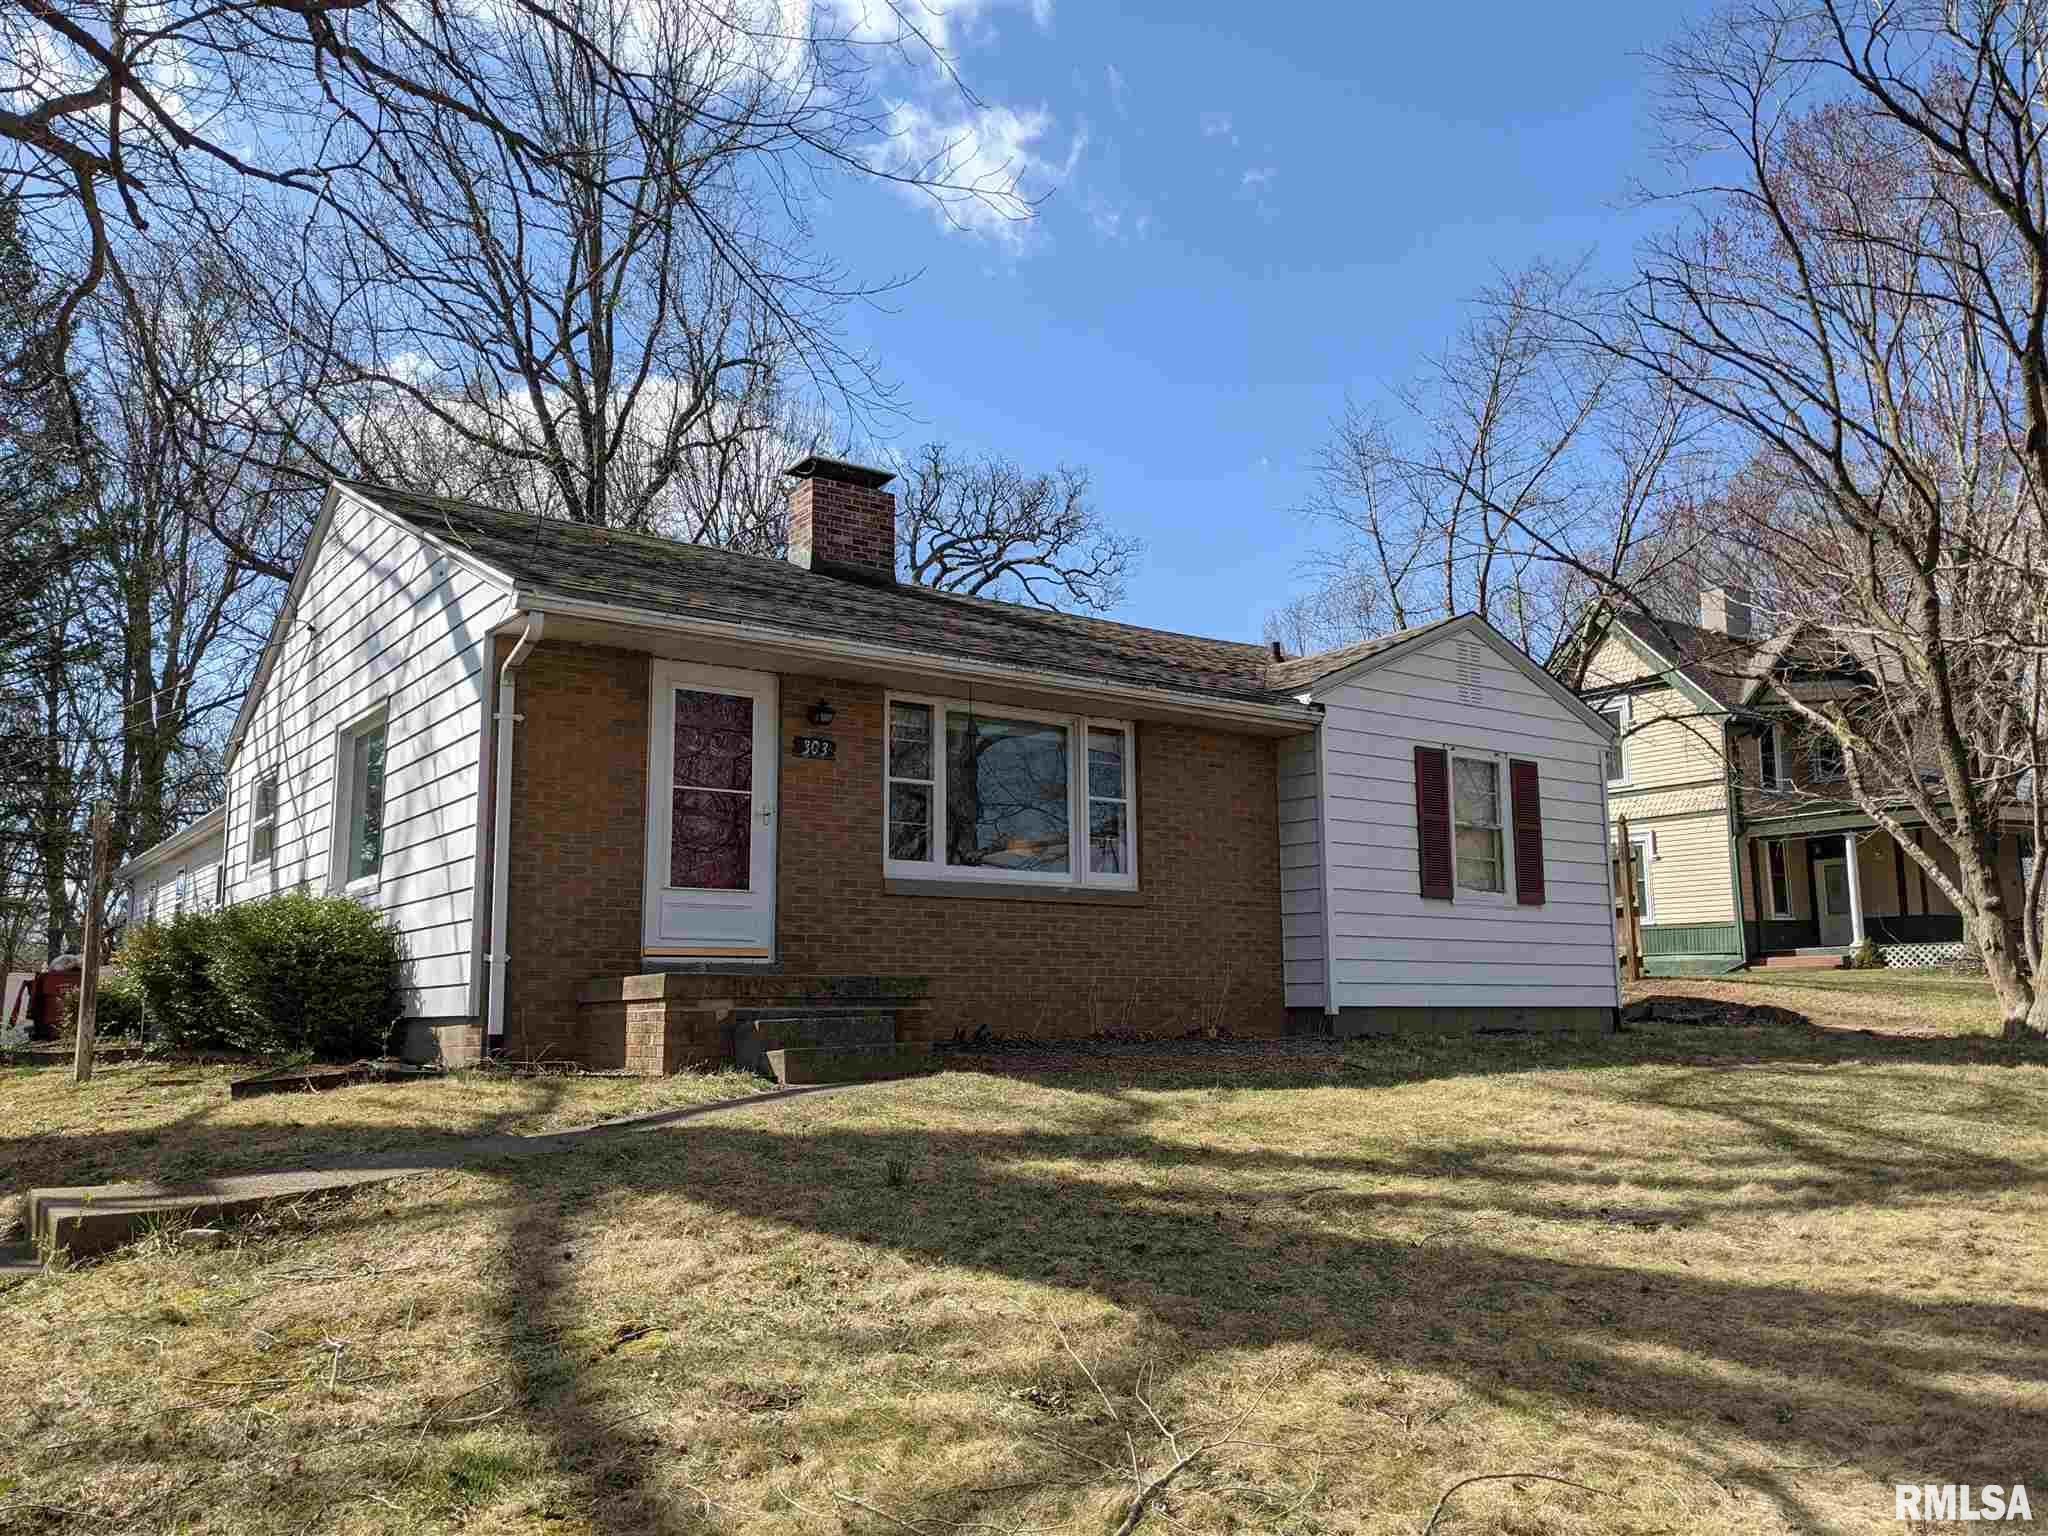 303 N 9TH Property Photo - Petersburg, IL real estate listing